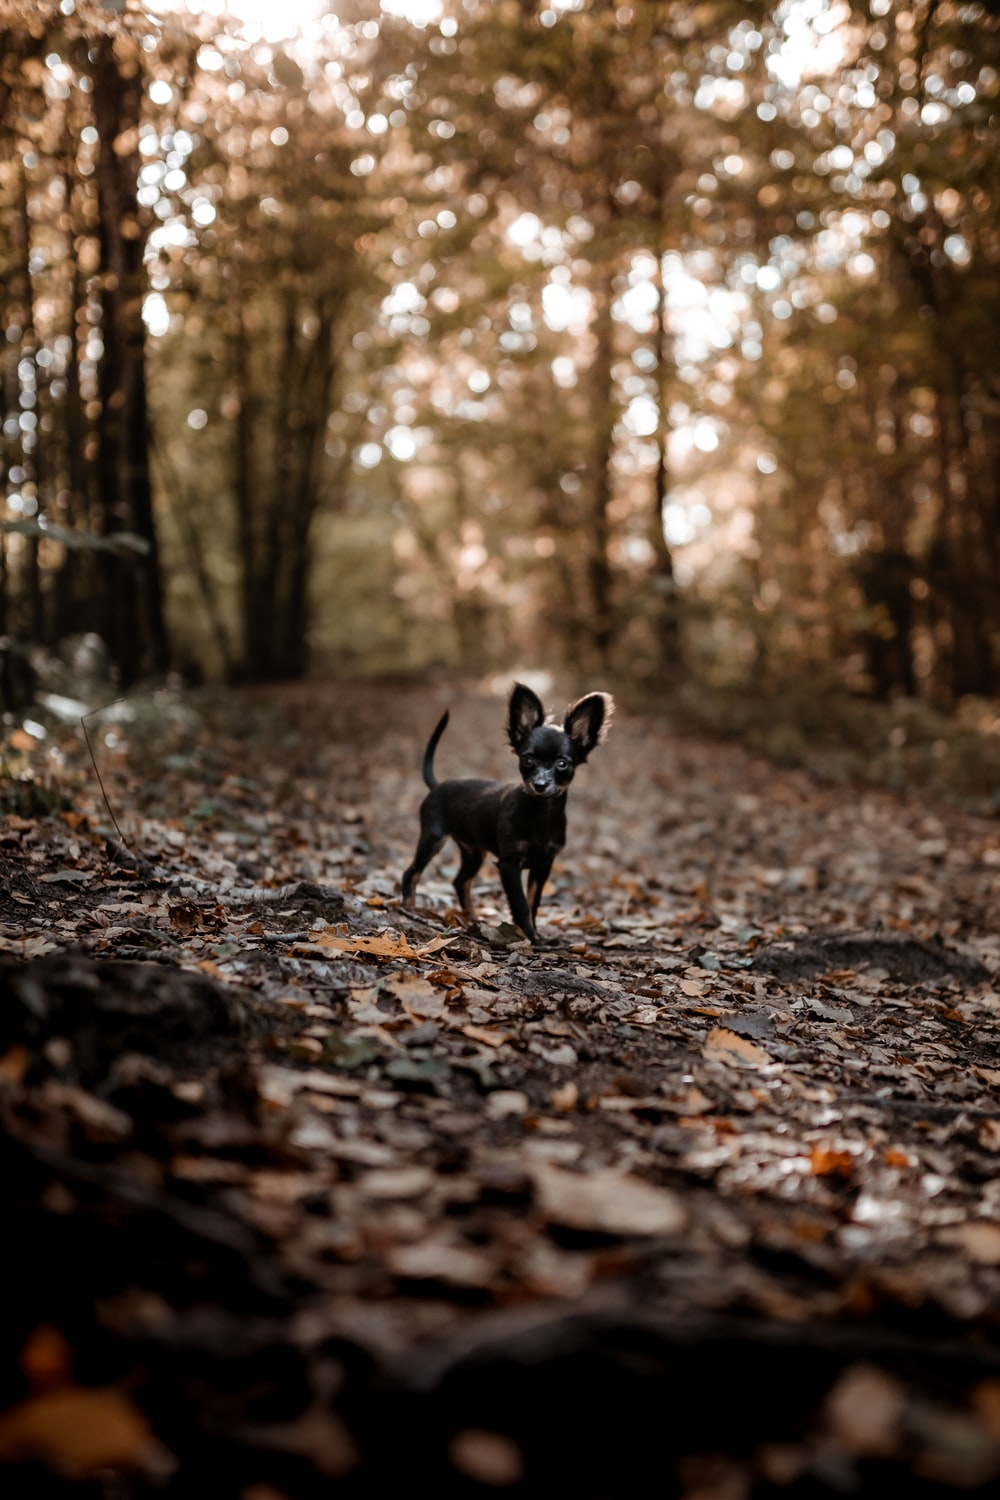 black short coat small dog walking on dried leaves on ground during daytime